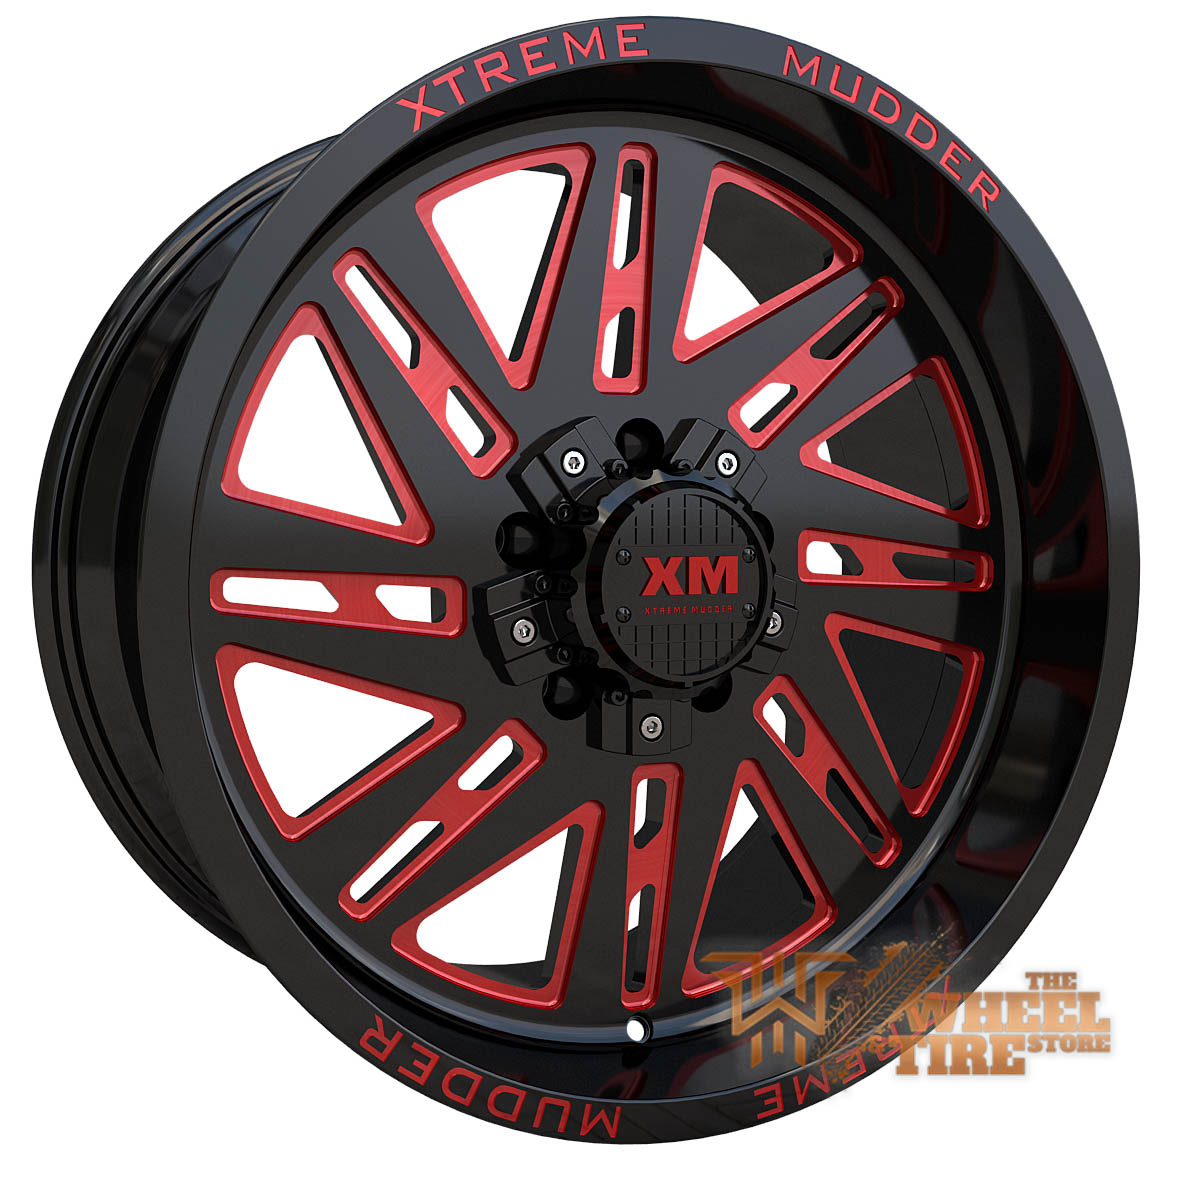 XTREME MUDDER XM-347 Wheel in Gloss Black Red Milled (Set of 4)